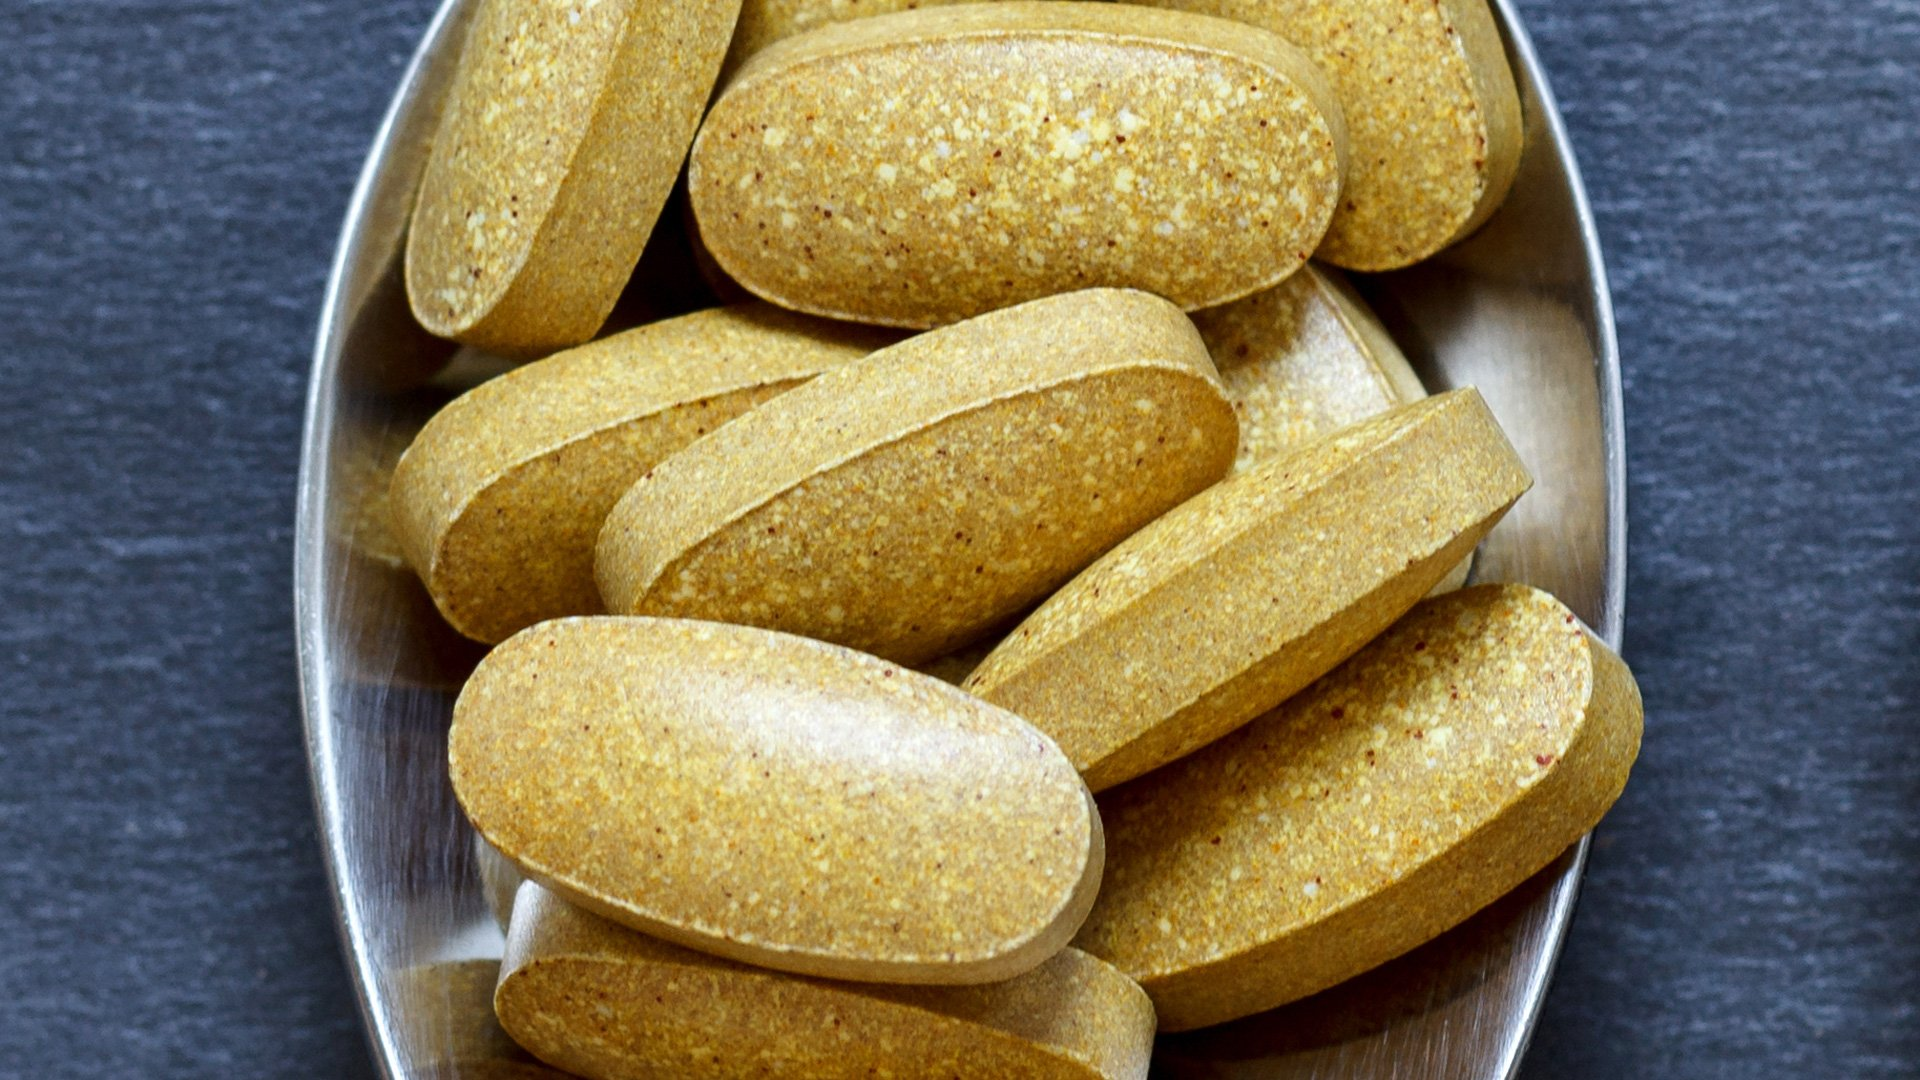 The Only Vitamins You Actually Need On A Daily Basis